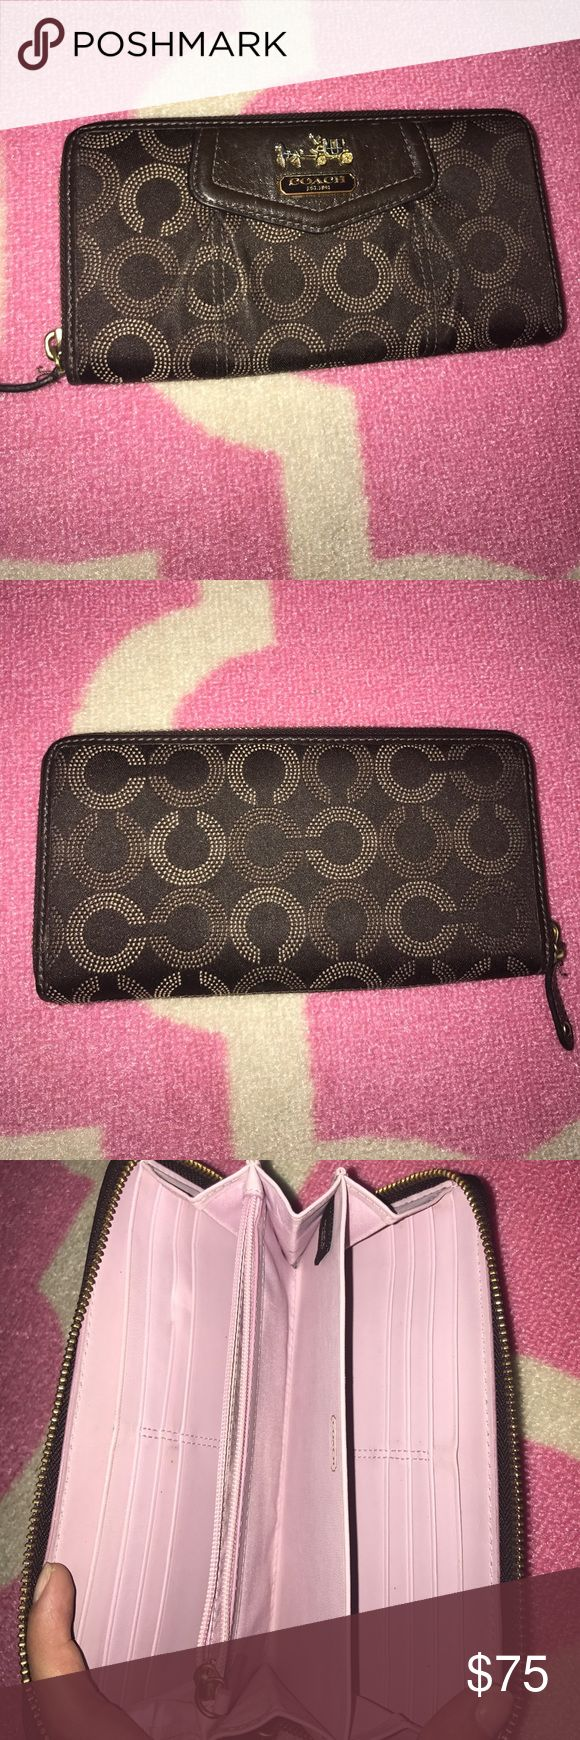 Authentic Coach Wallet Brown coach wallet in great condition. Feel free to ask any questions or make an offer! Coach Bags Wallets